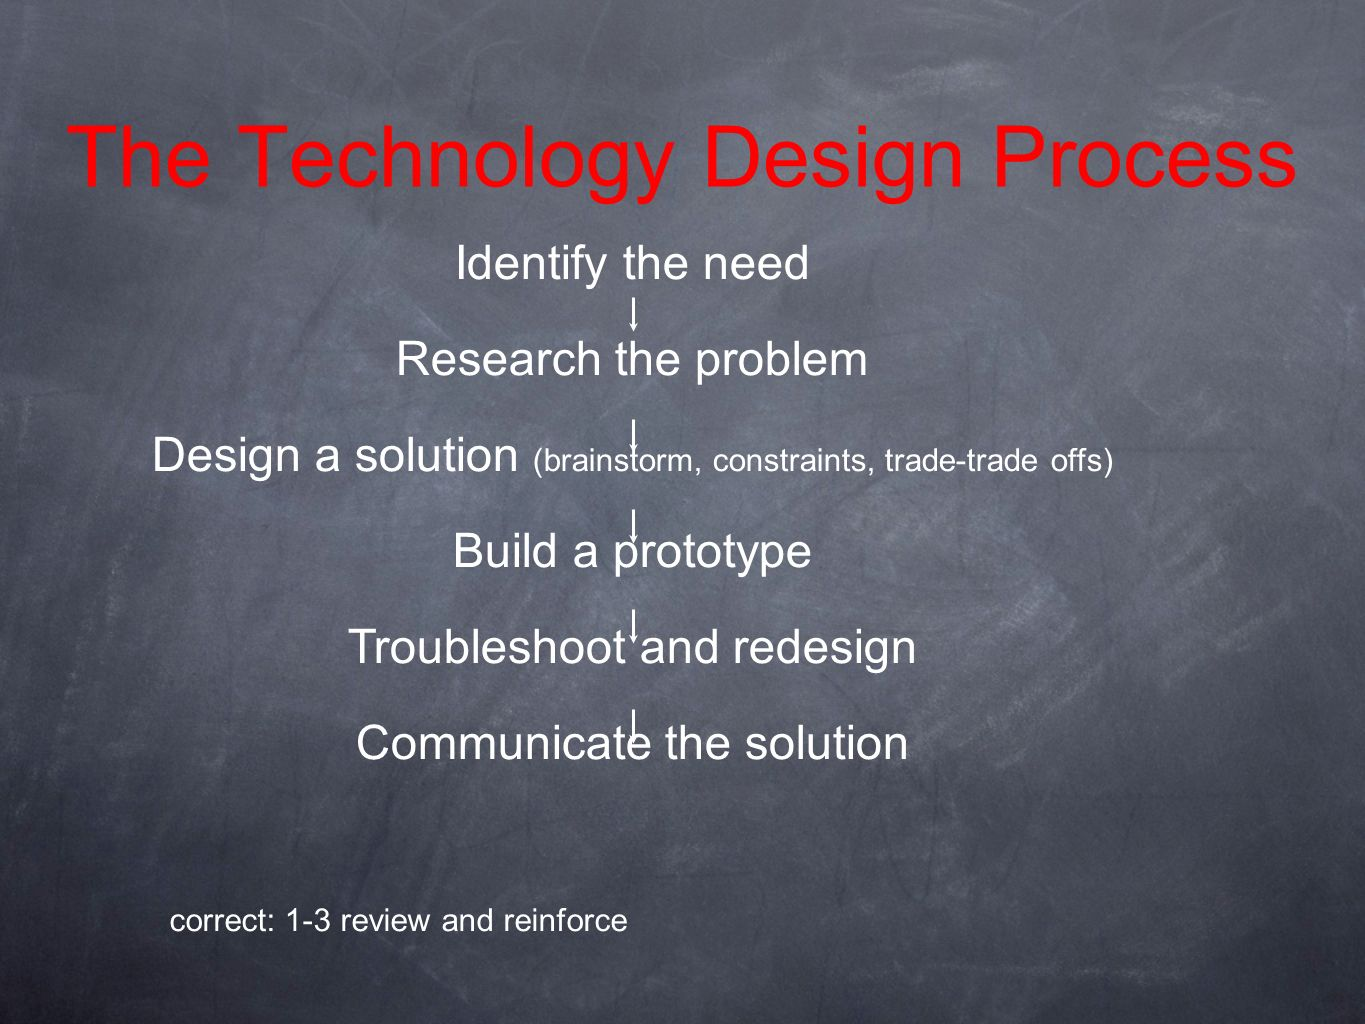 The Technology Design Process